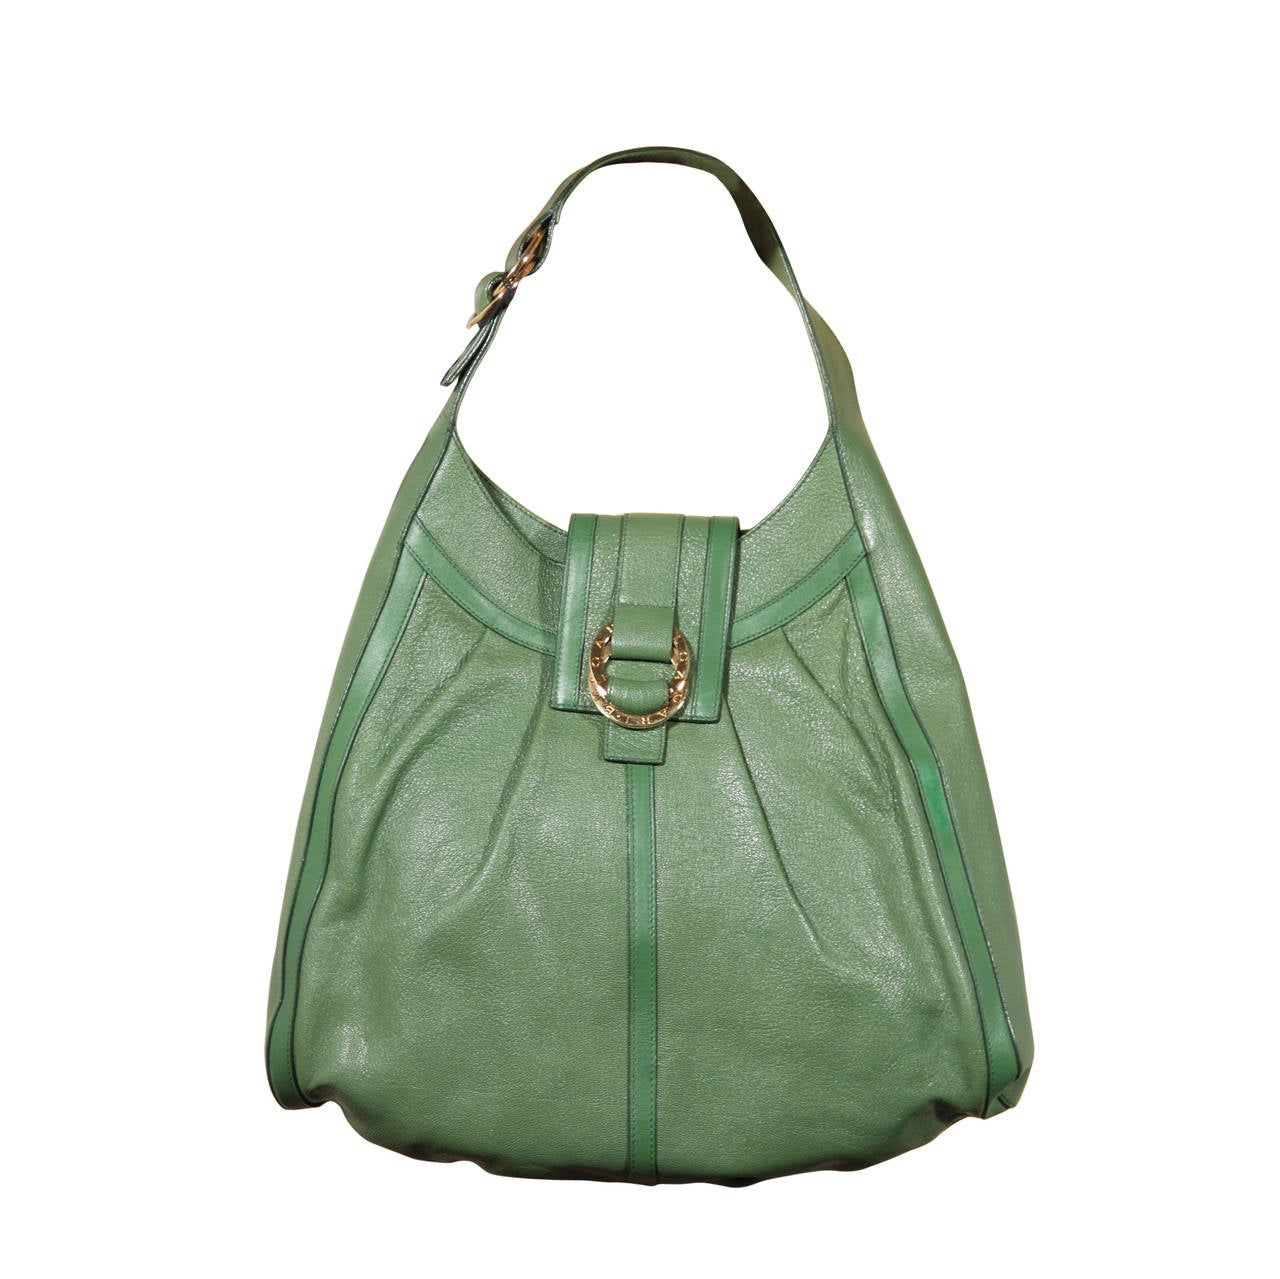 BULGARI BVLGARI Italian Authentic Green Leather CHANDRA BAG ...